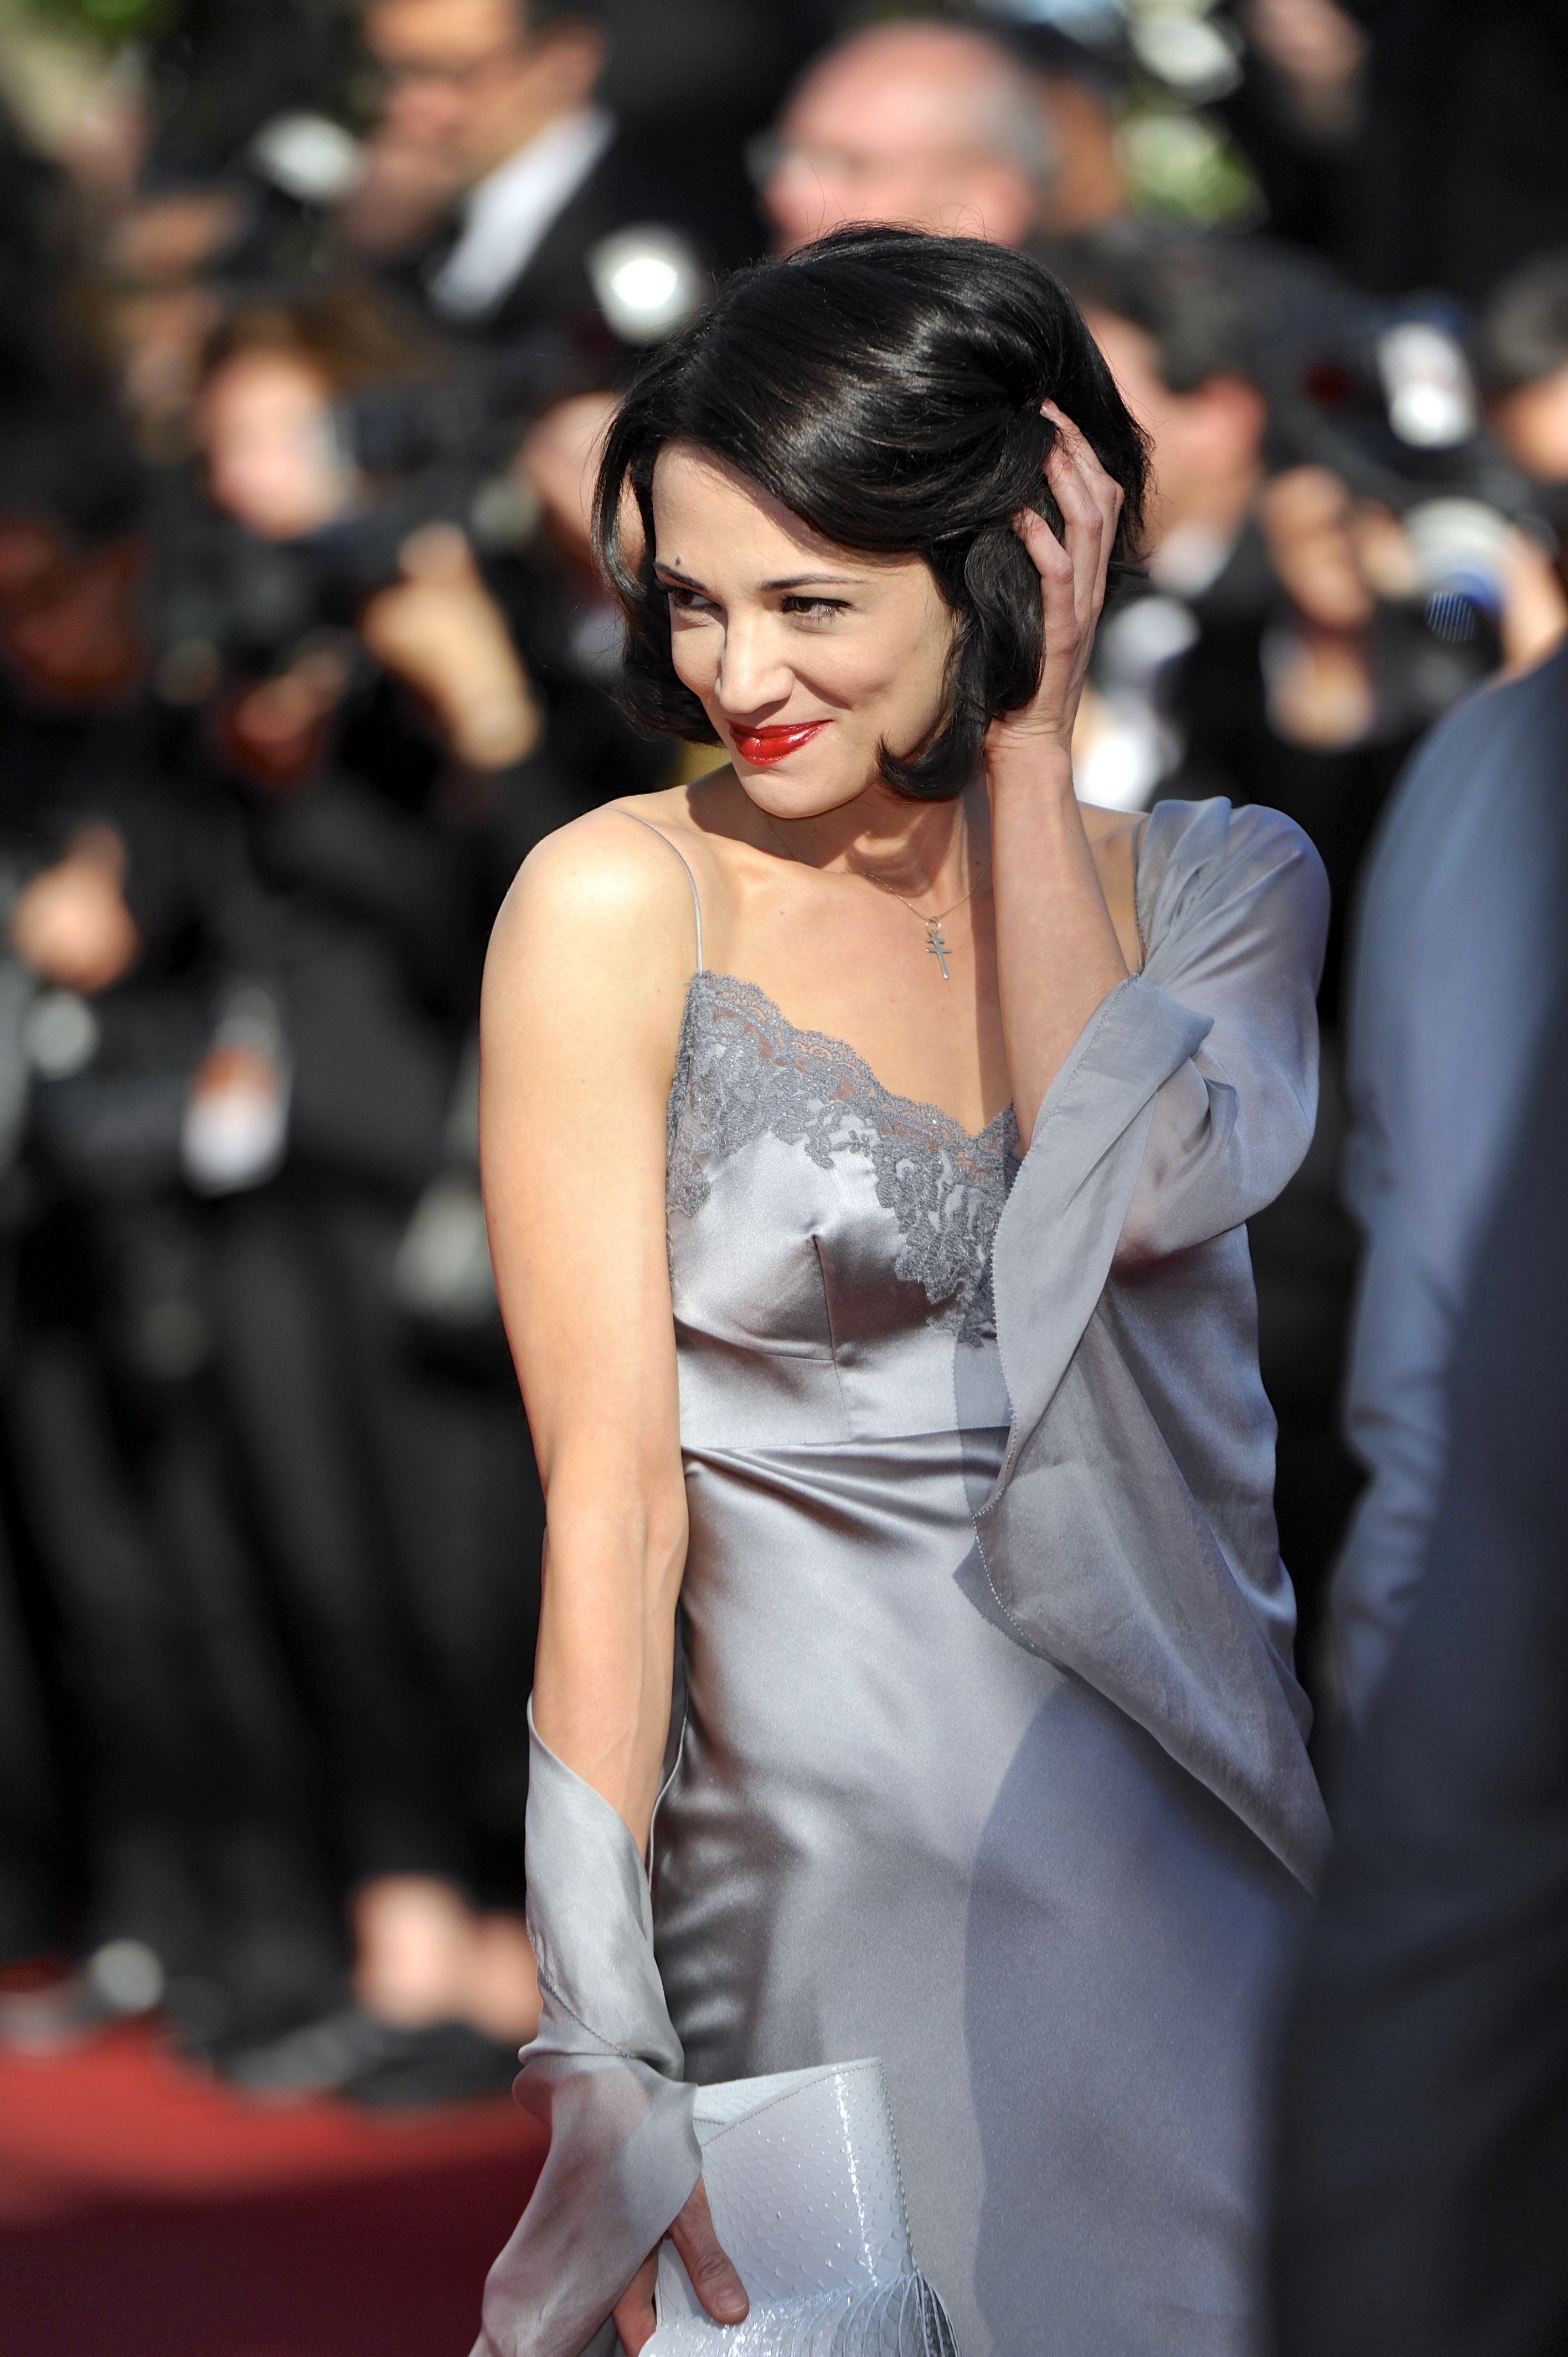 Asia Argento at the 66th Cannes Film Festival - 'Zulu' - Premiere. When: 26 May 2013 Credit: News Pictures/WENN.com